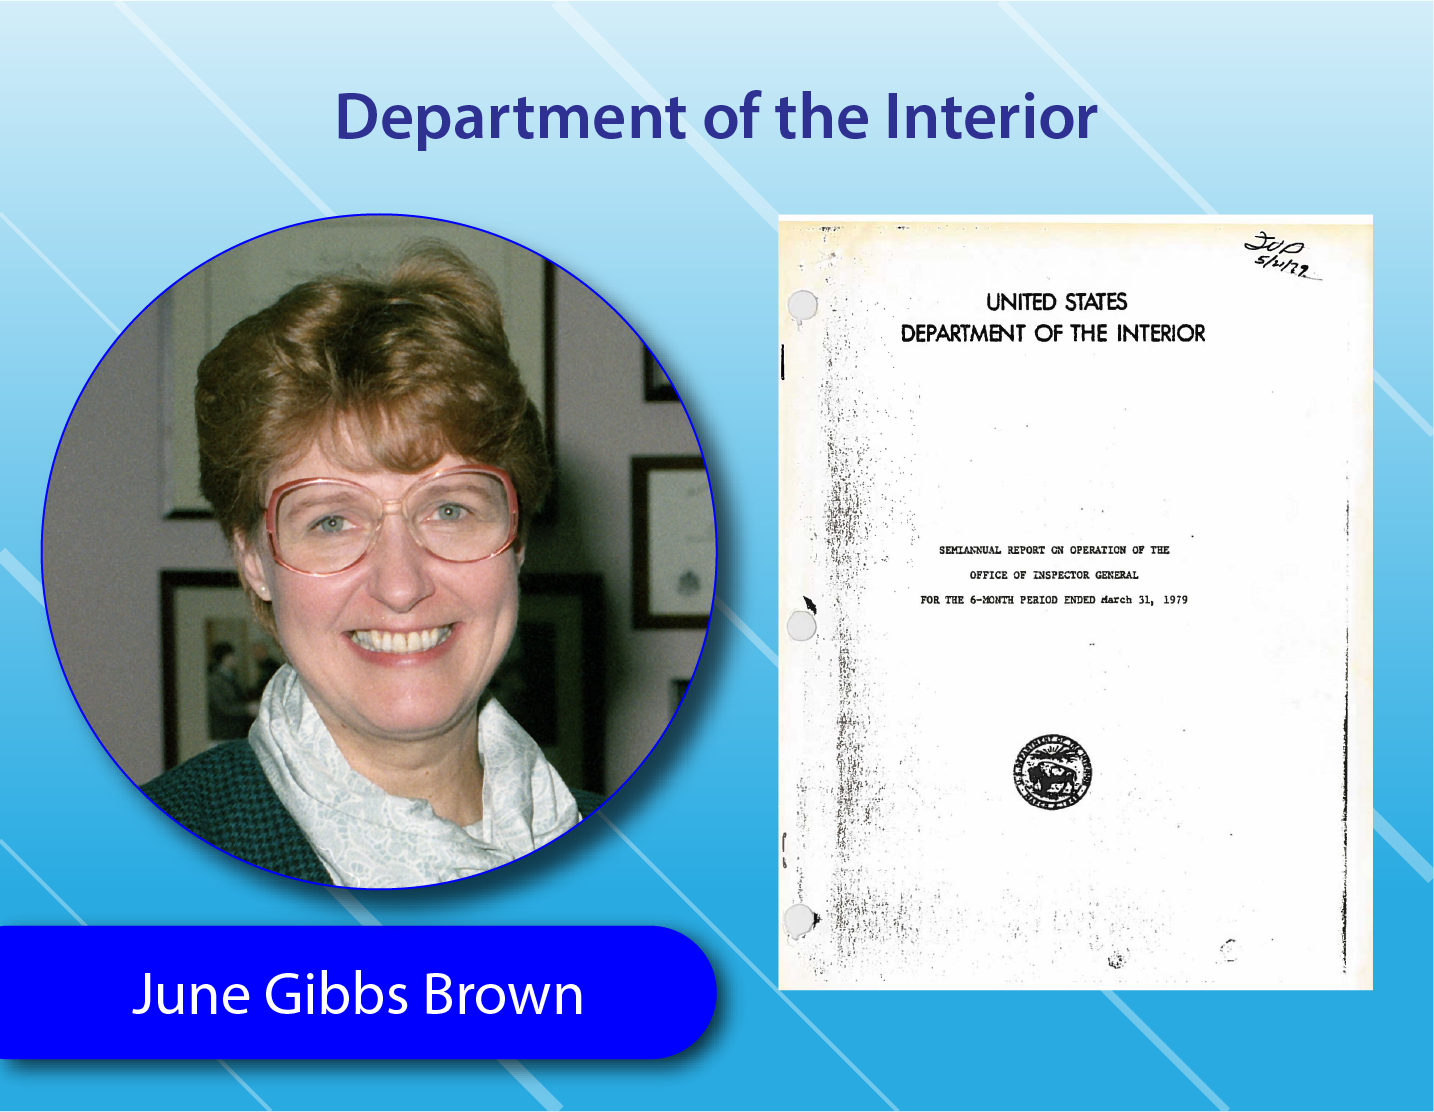 Department of Interior - June Gibbs Brown